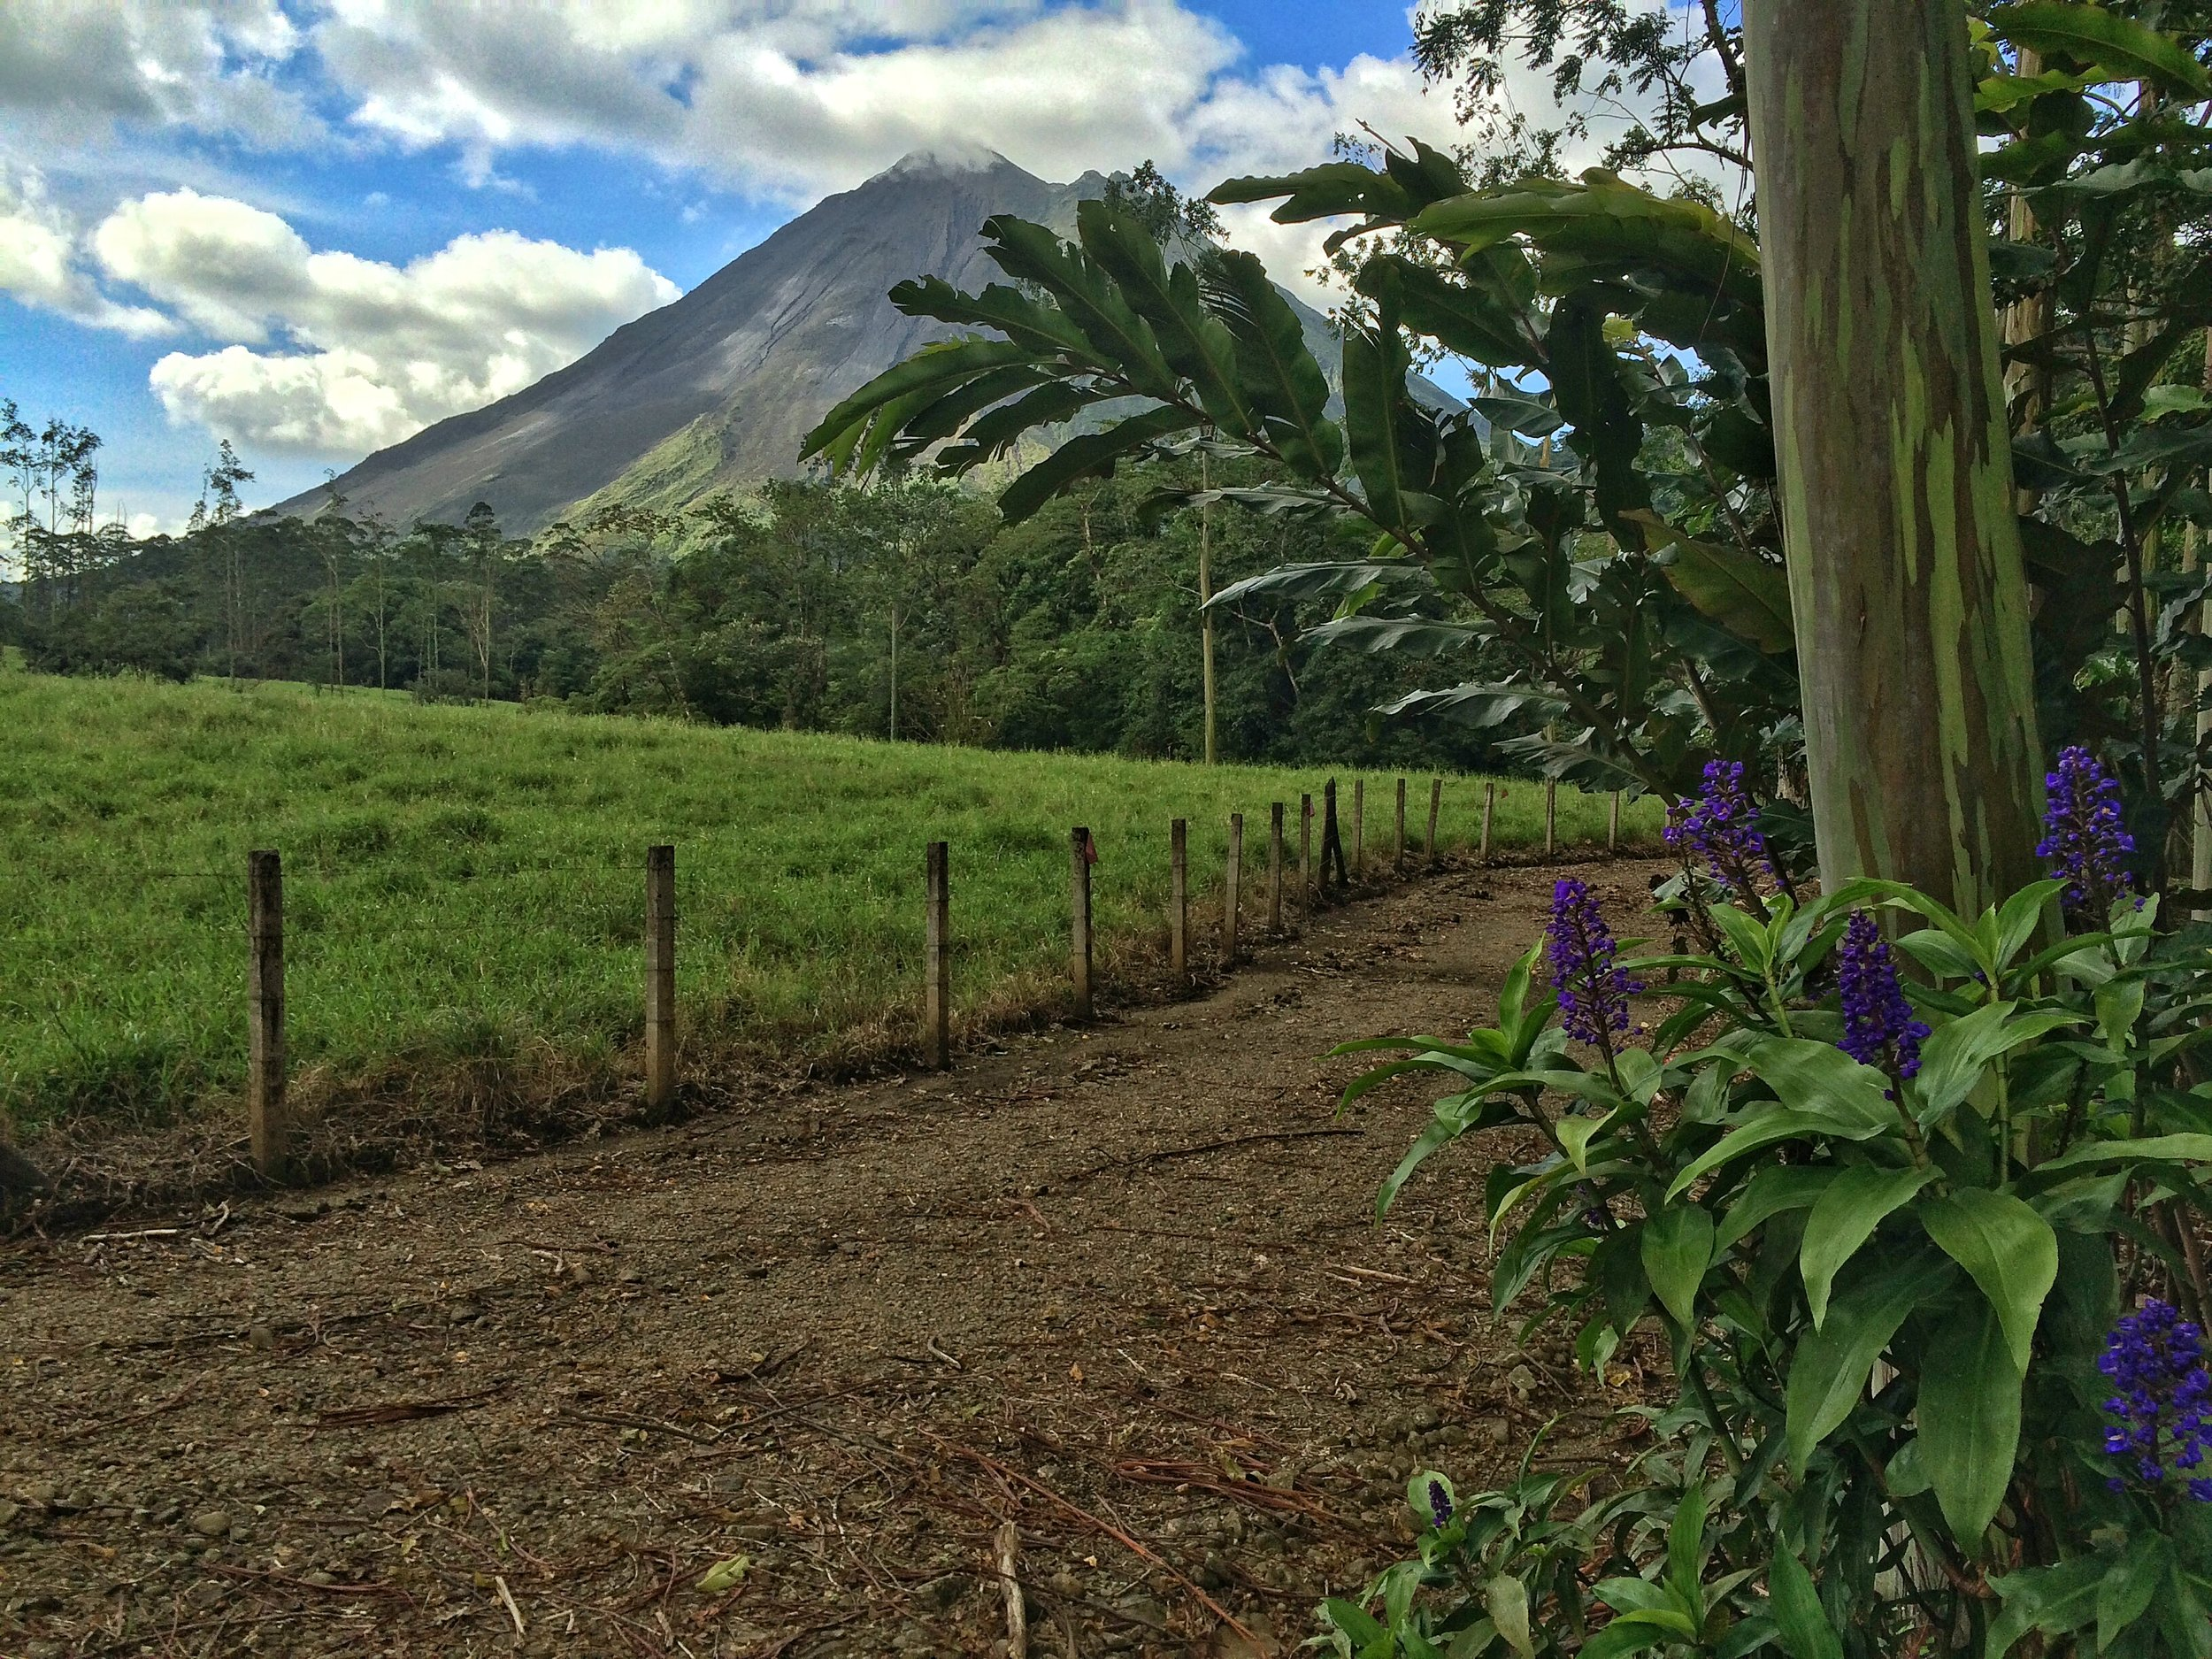 The area around Arenal Volcano is full of hiking and adventure opportunities for all skill levels.